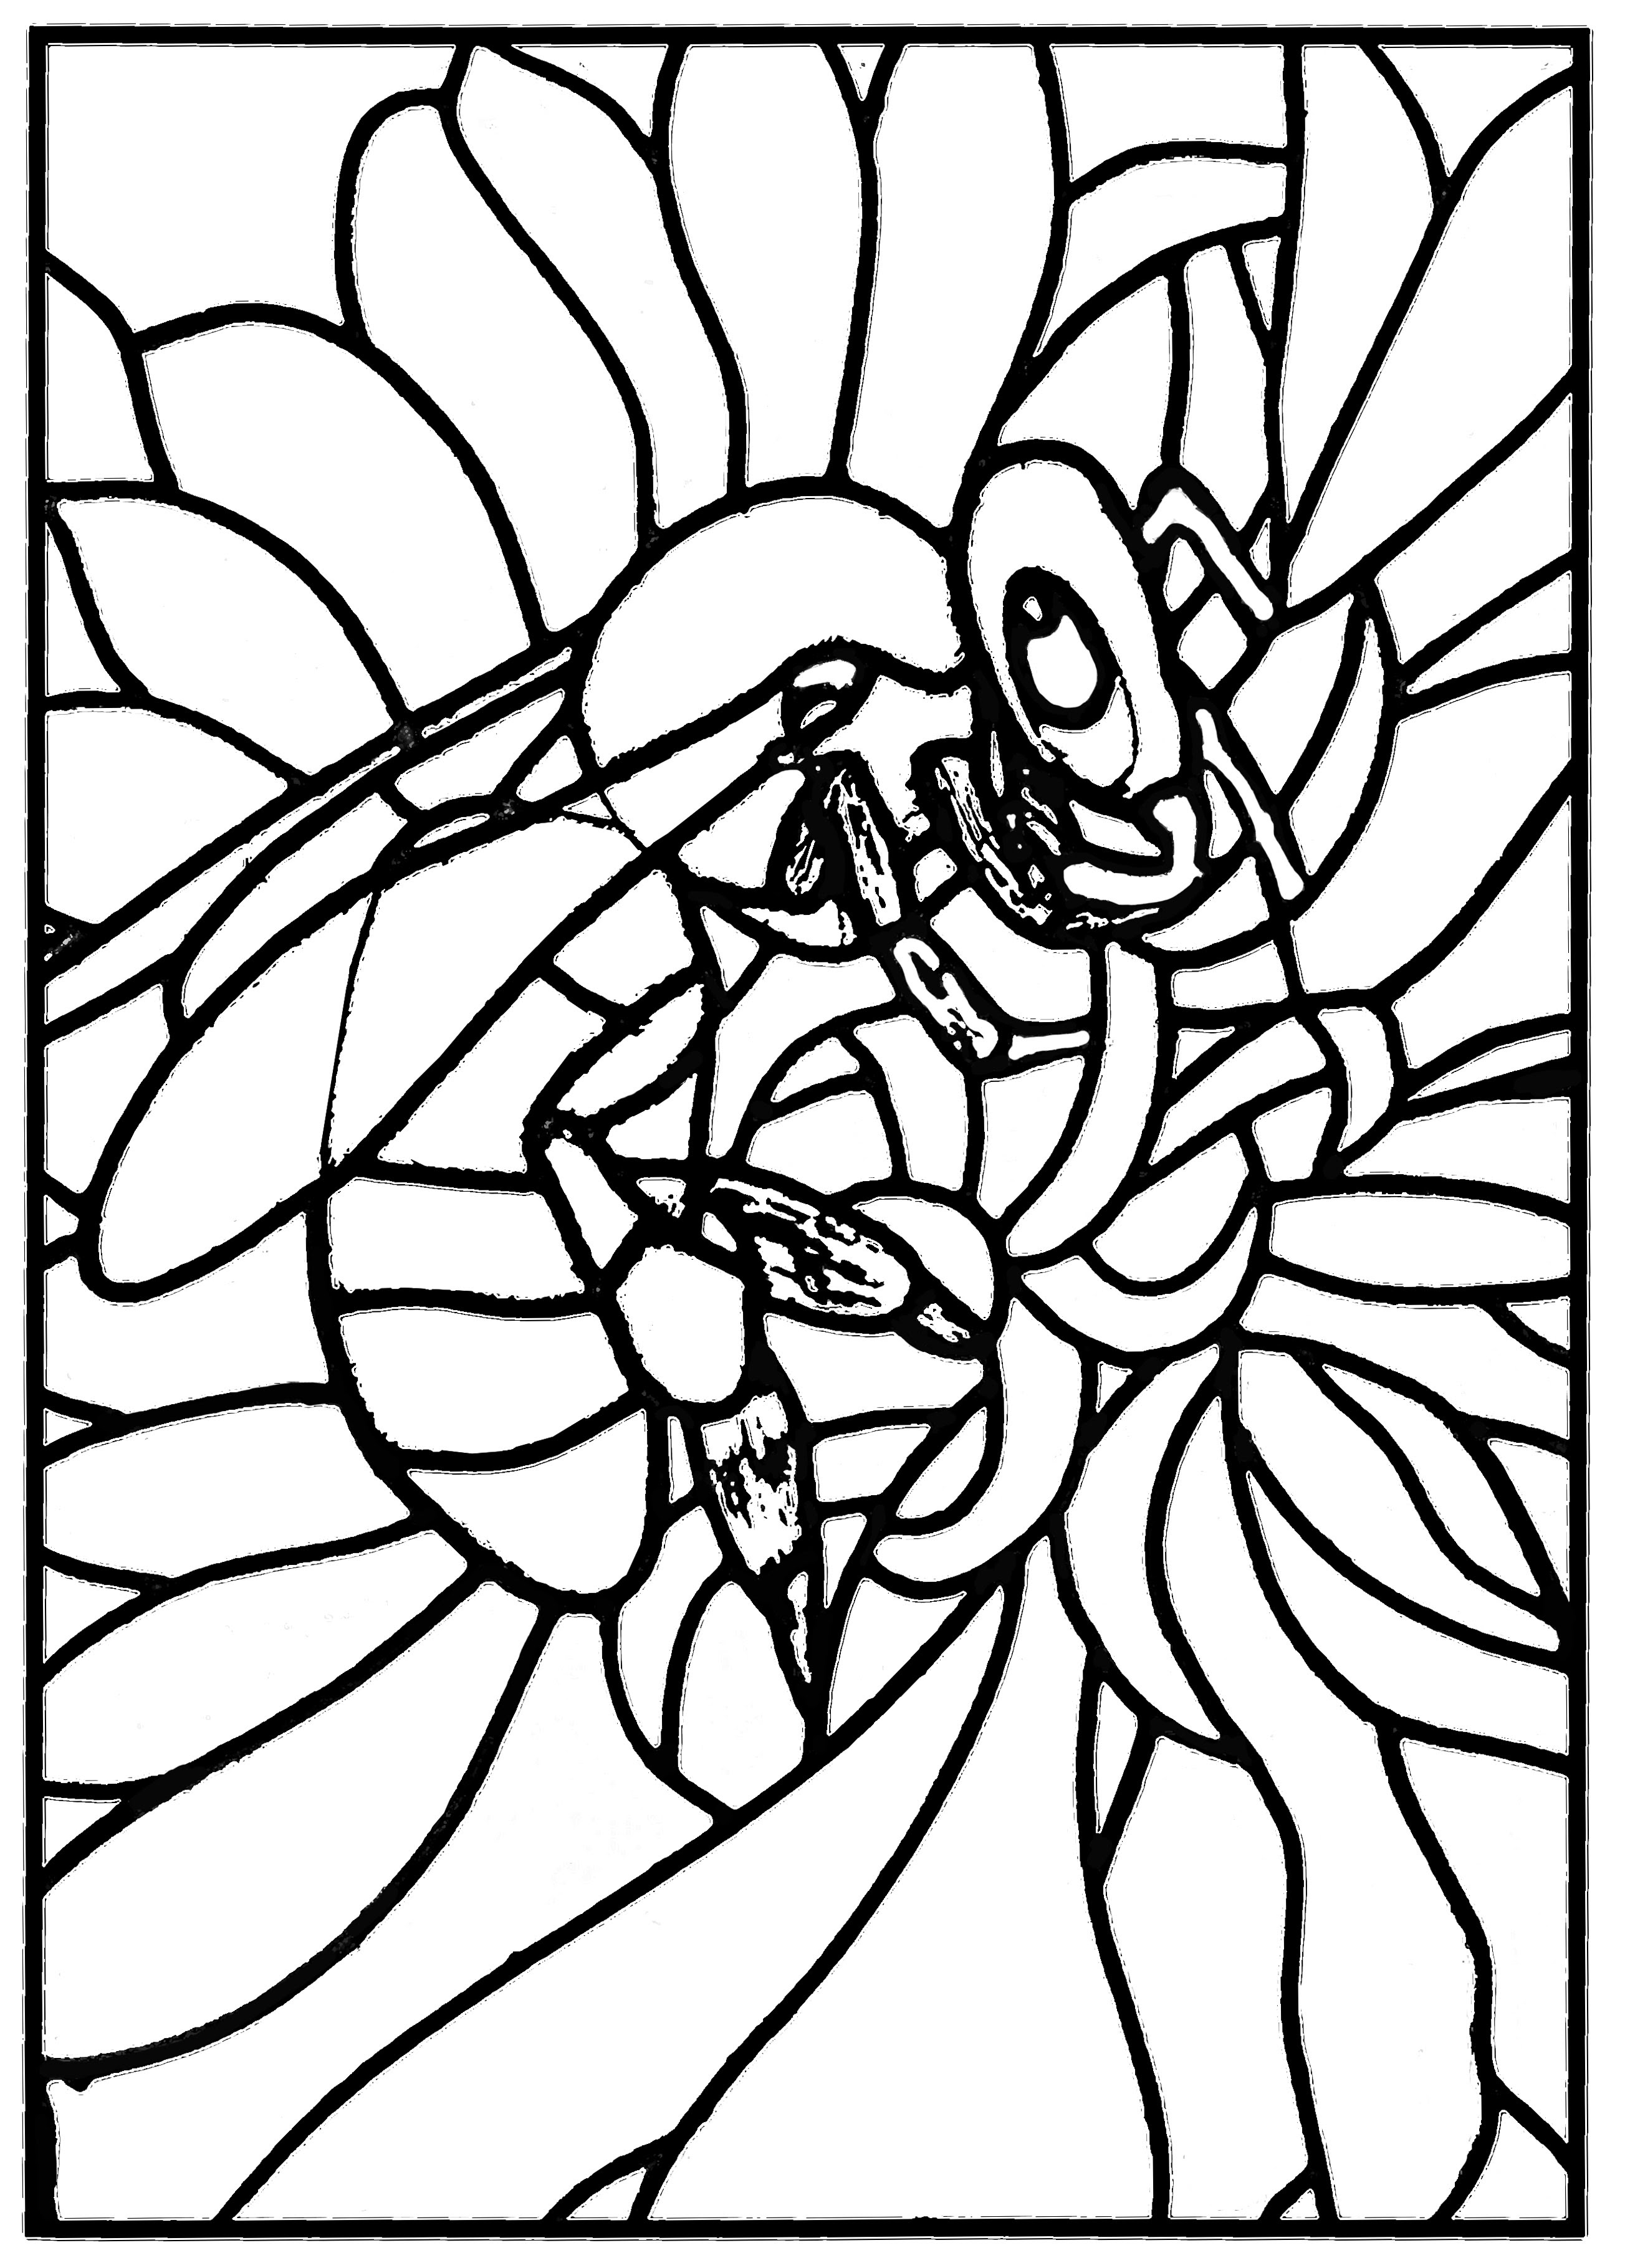 Stained glass bee workshop jb tosi 2010 - Stained Glass ...